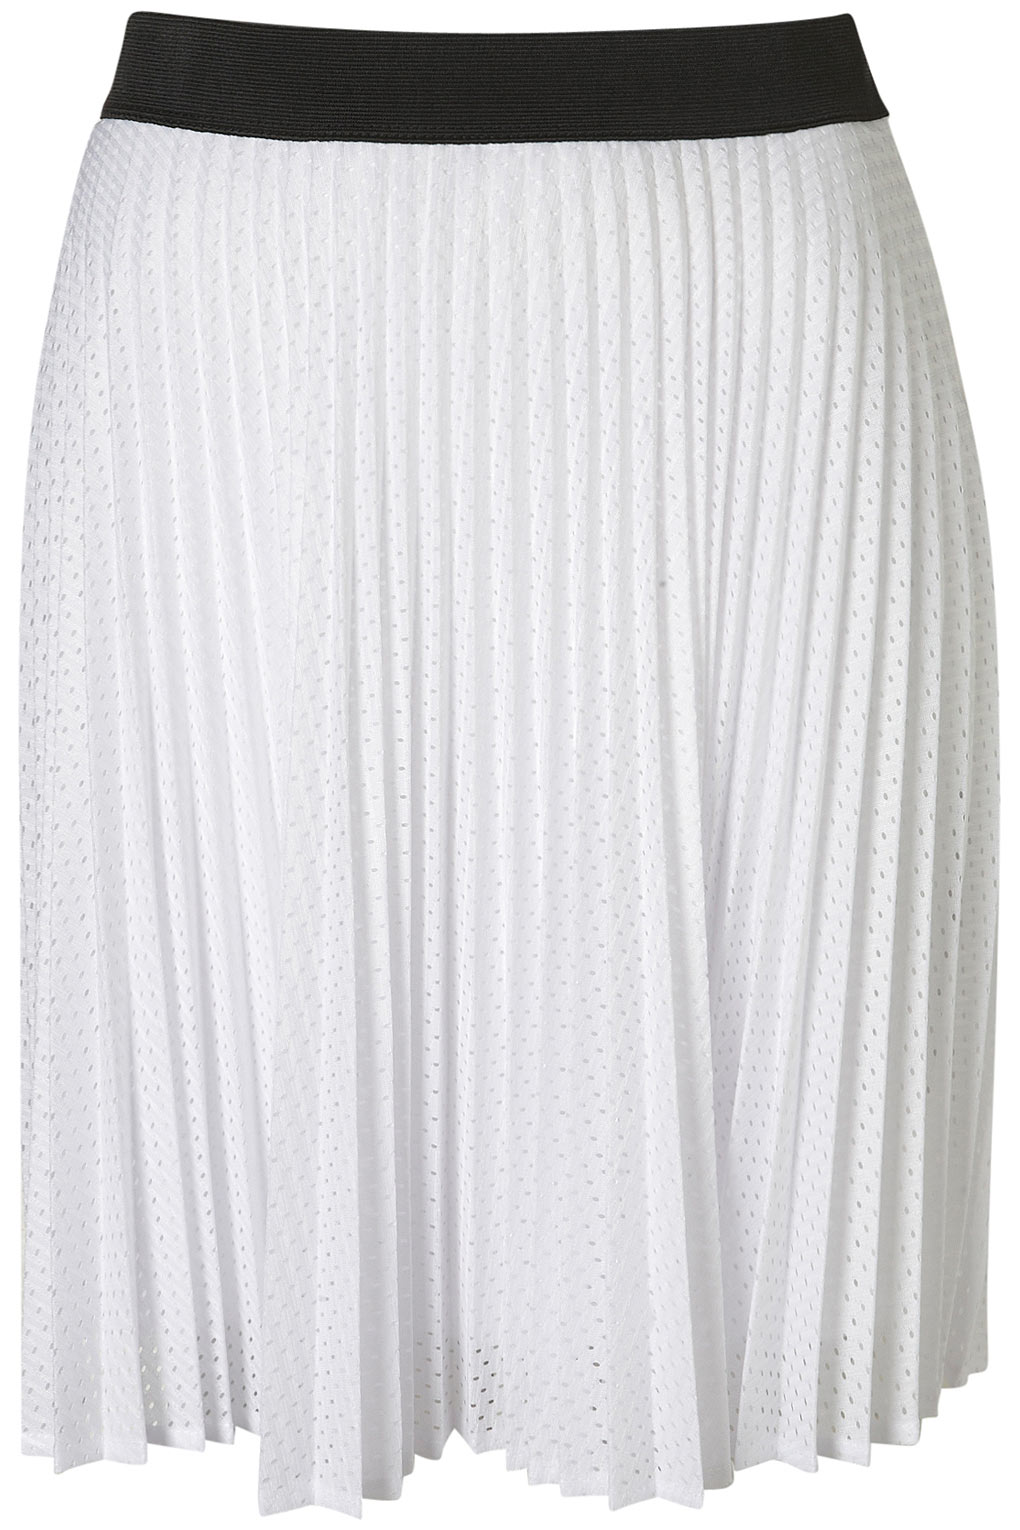 Topshop Airtex Pleated Skirt in White | Lyst